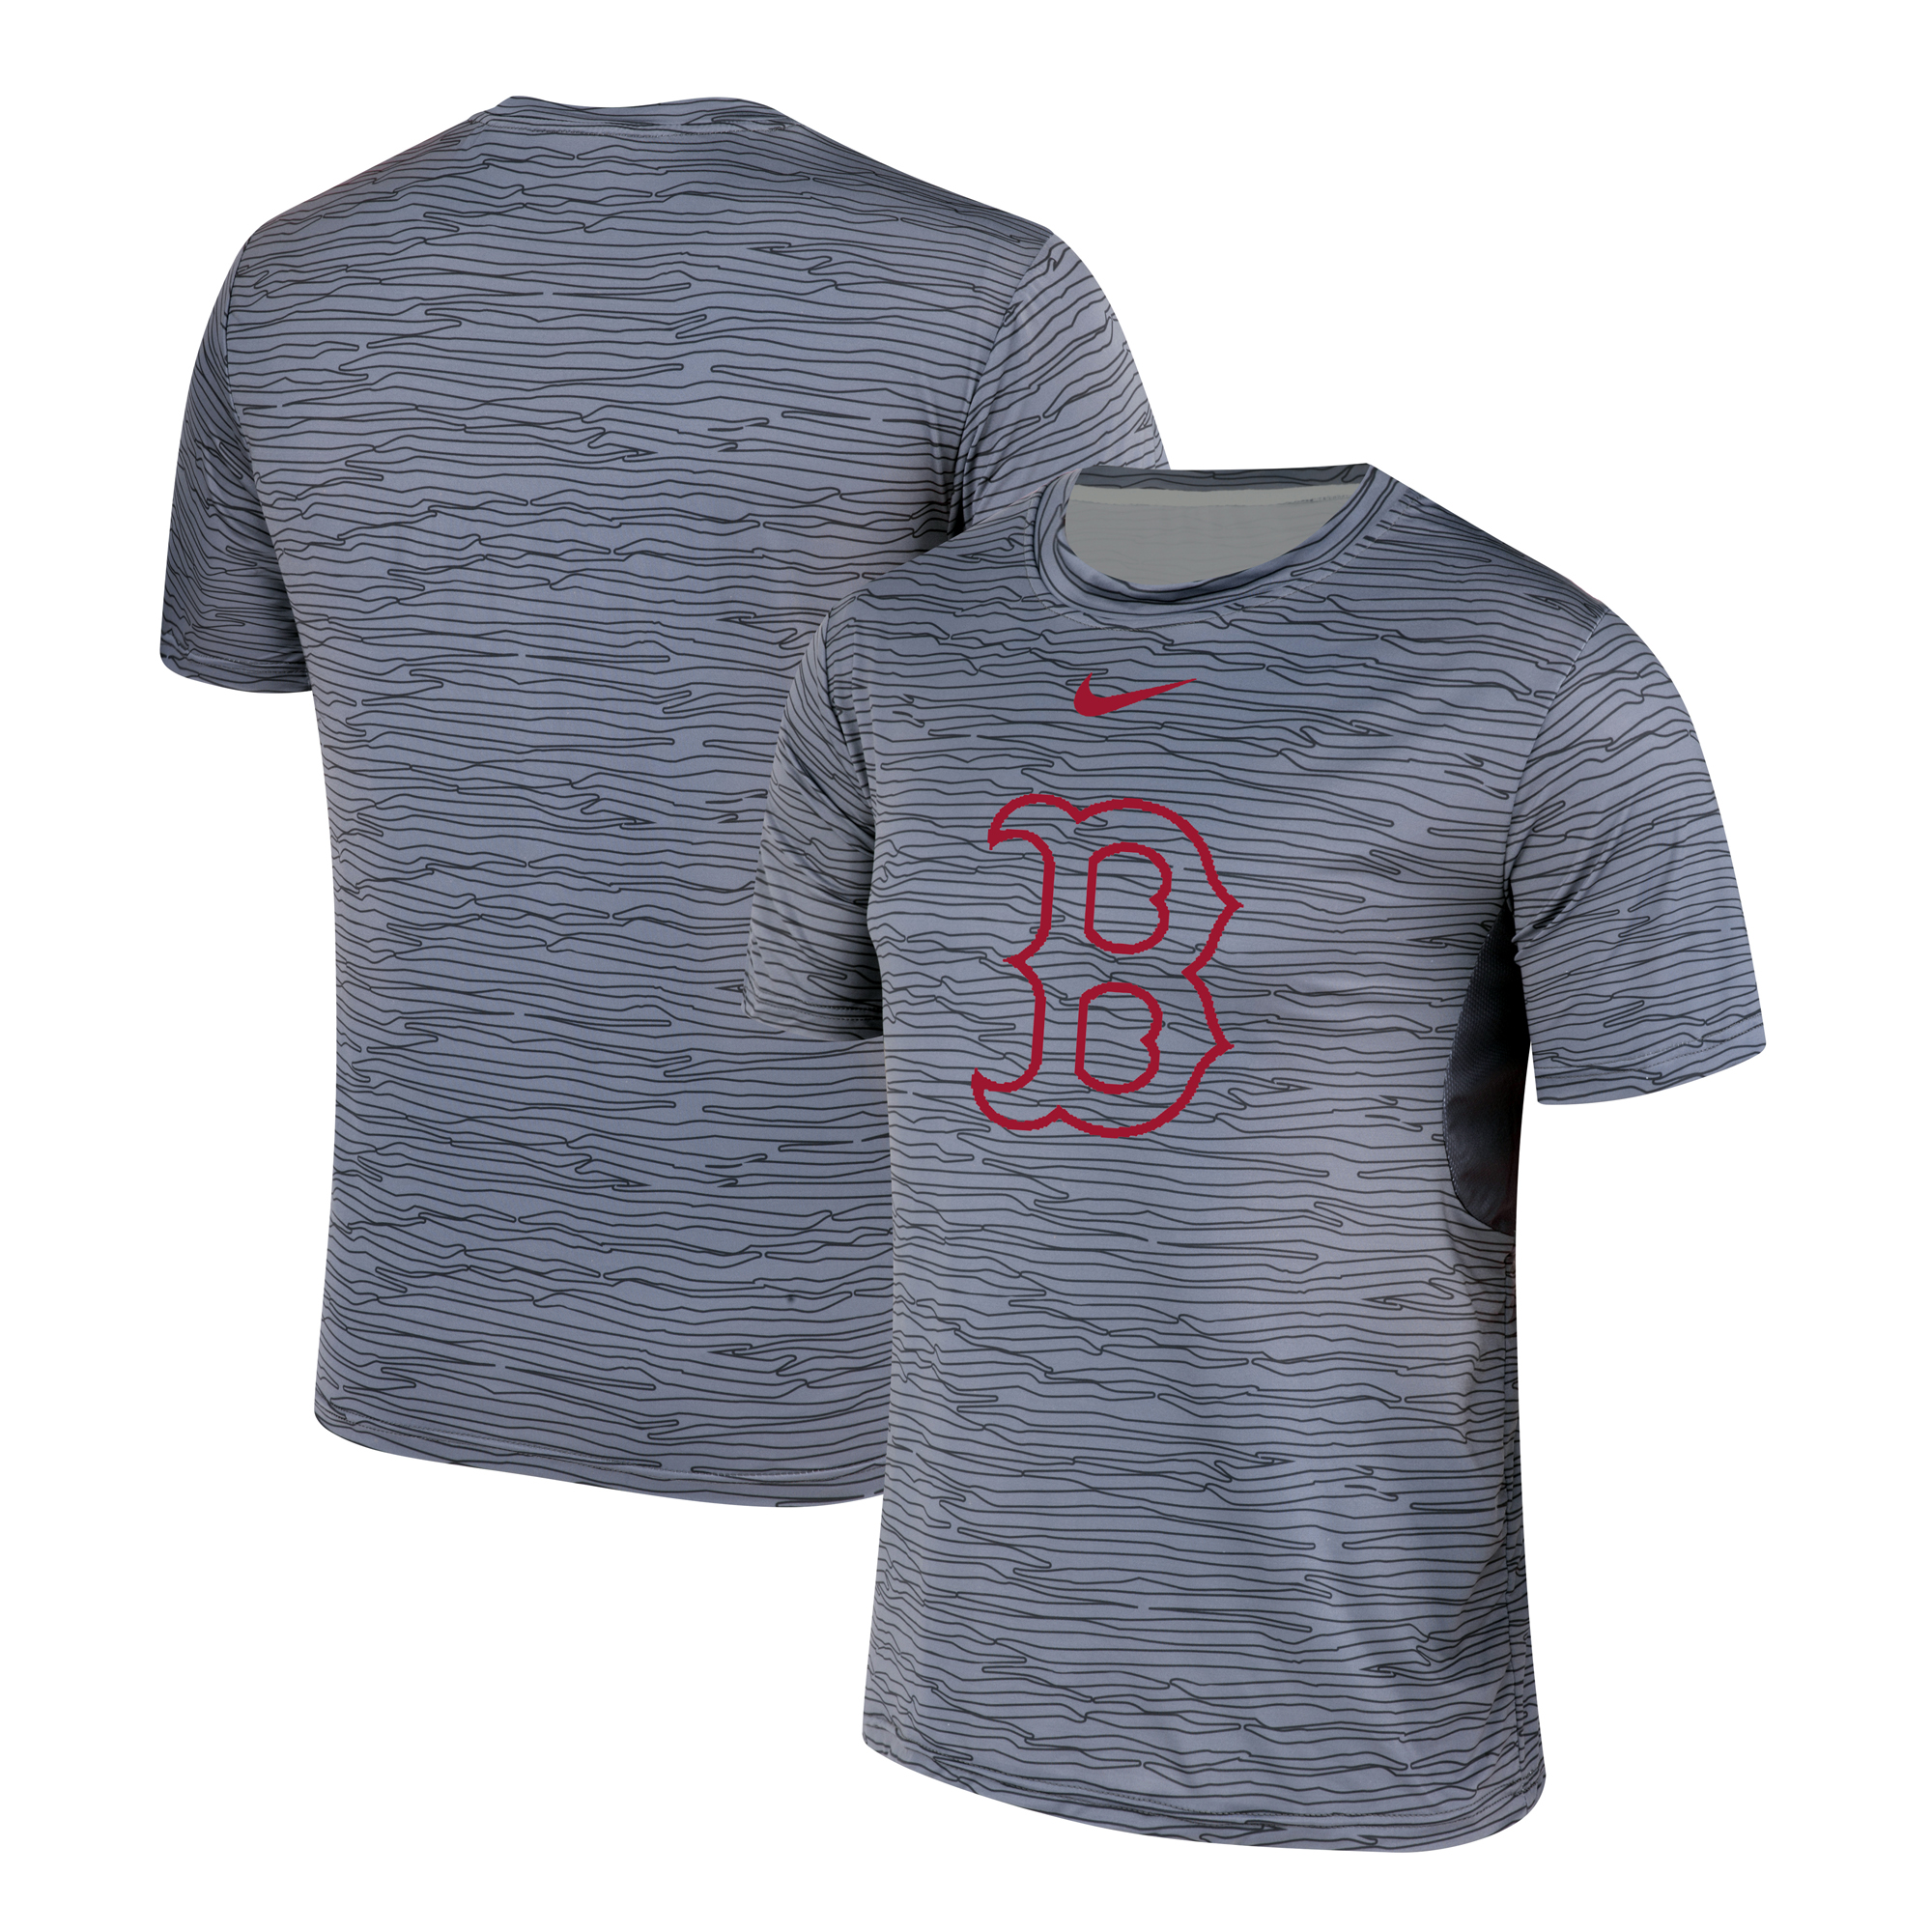 Nike Boston Red Sox Gray Black Striped Logo Performance T-Shirt